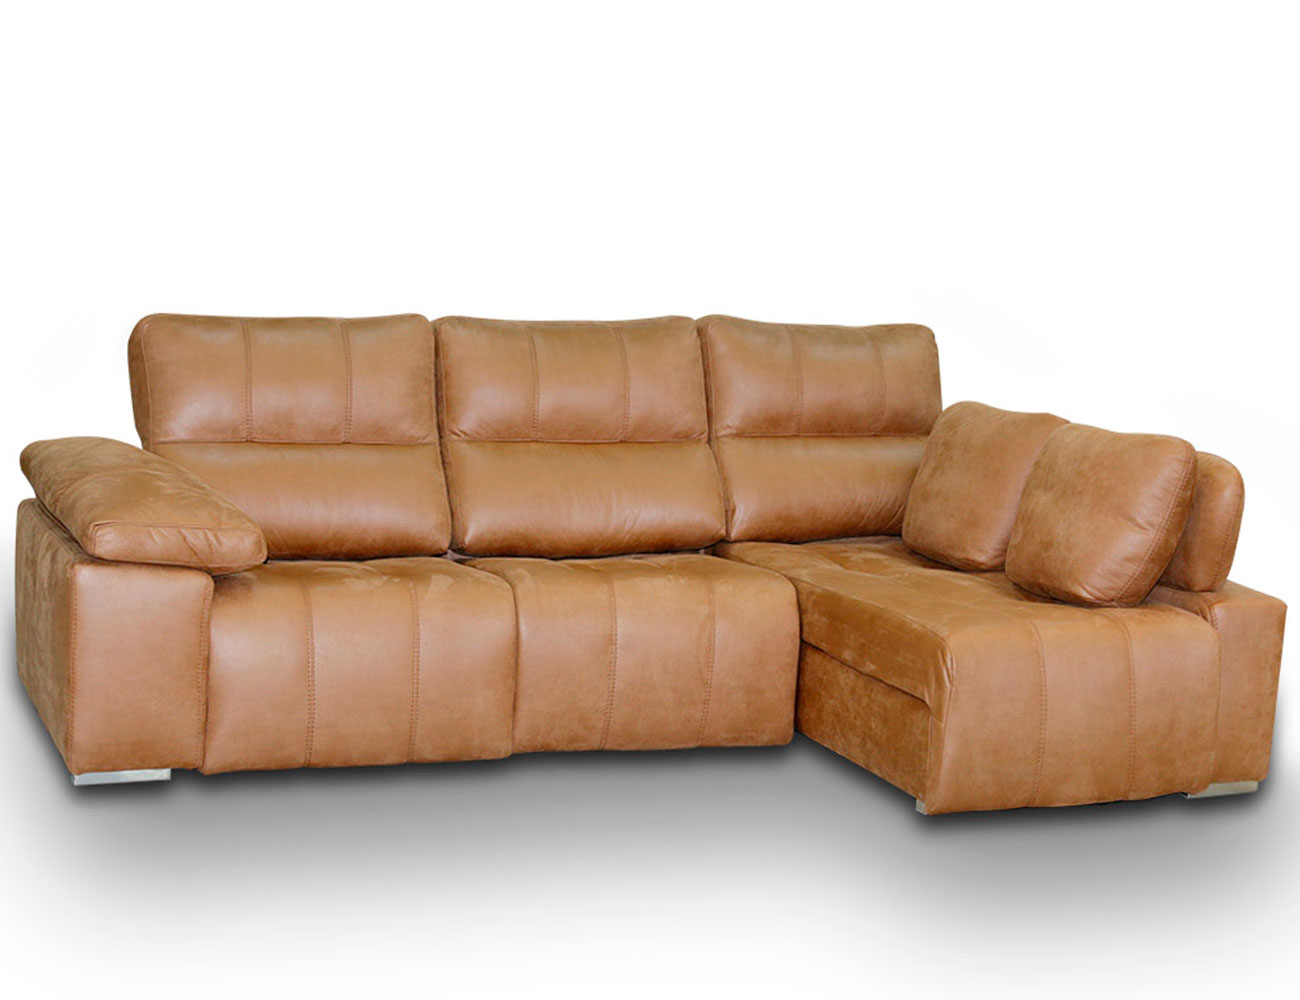 Sofa chaiselongue relax 2 motores anti manchas47